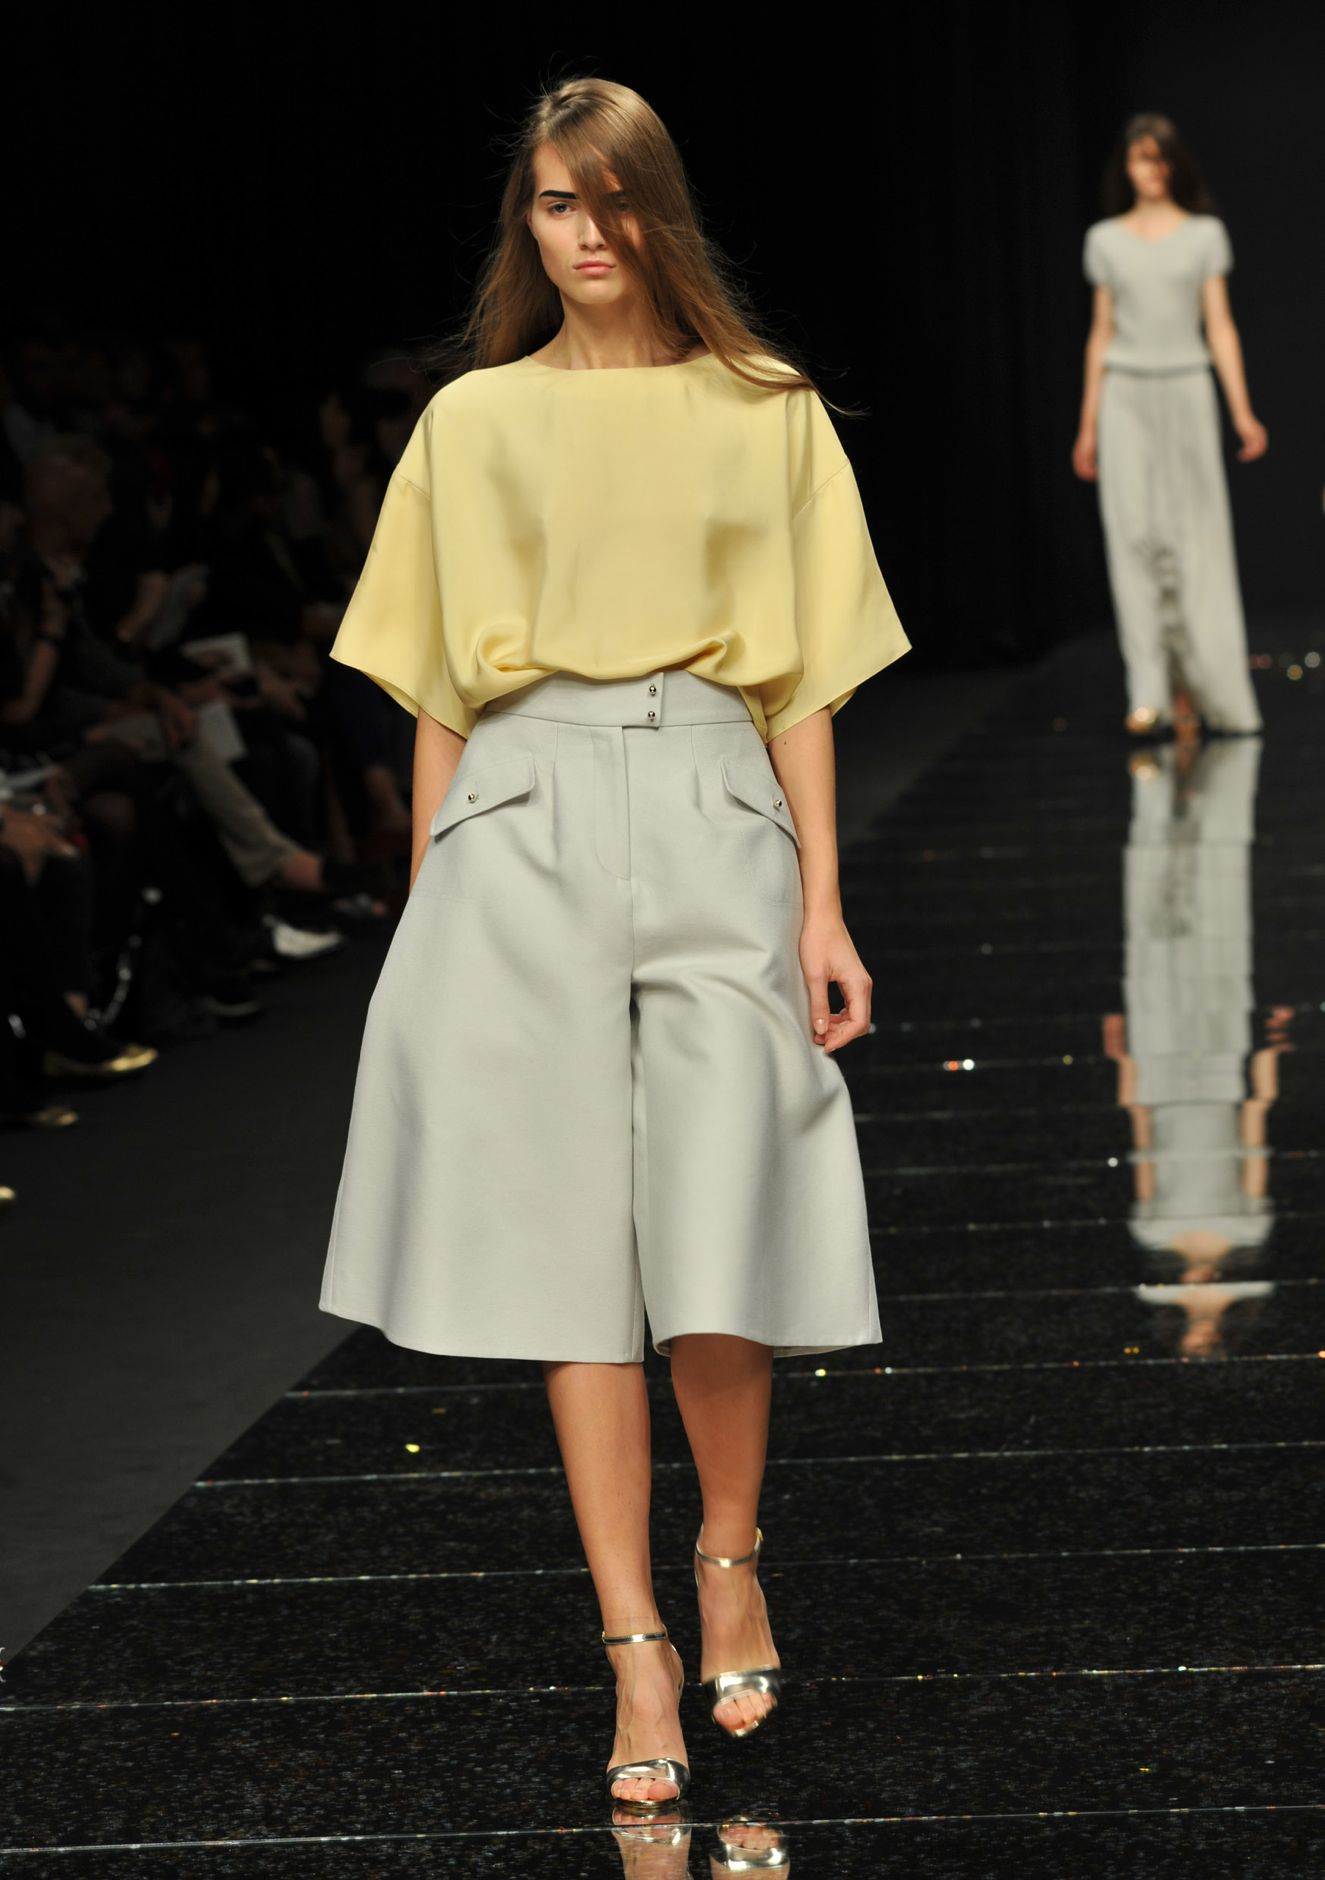 Anteprima Summer 2013 Collection Milano Fashion Week